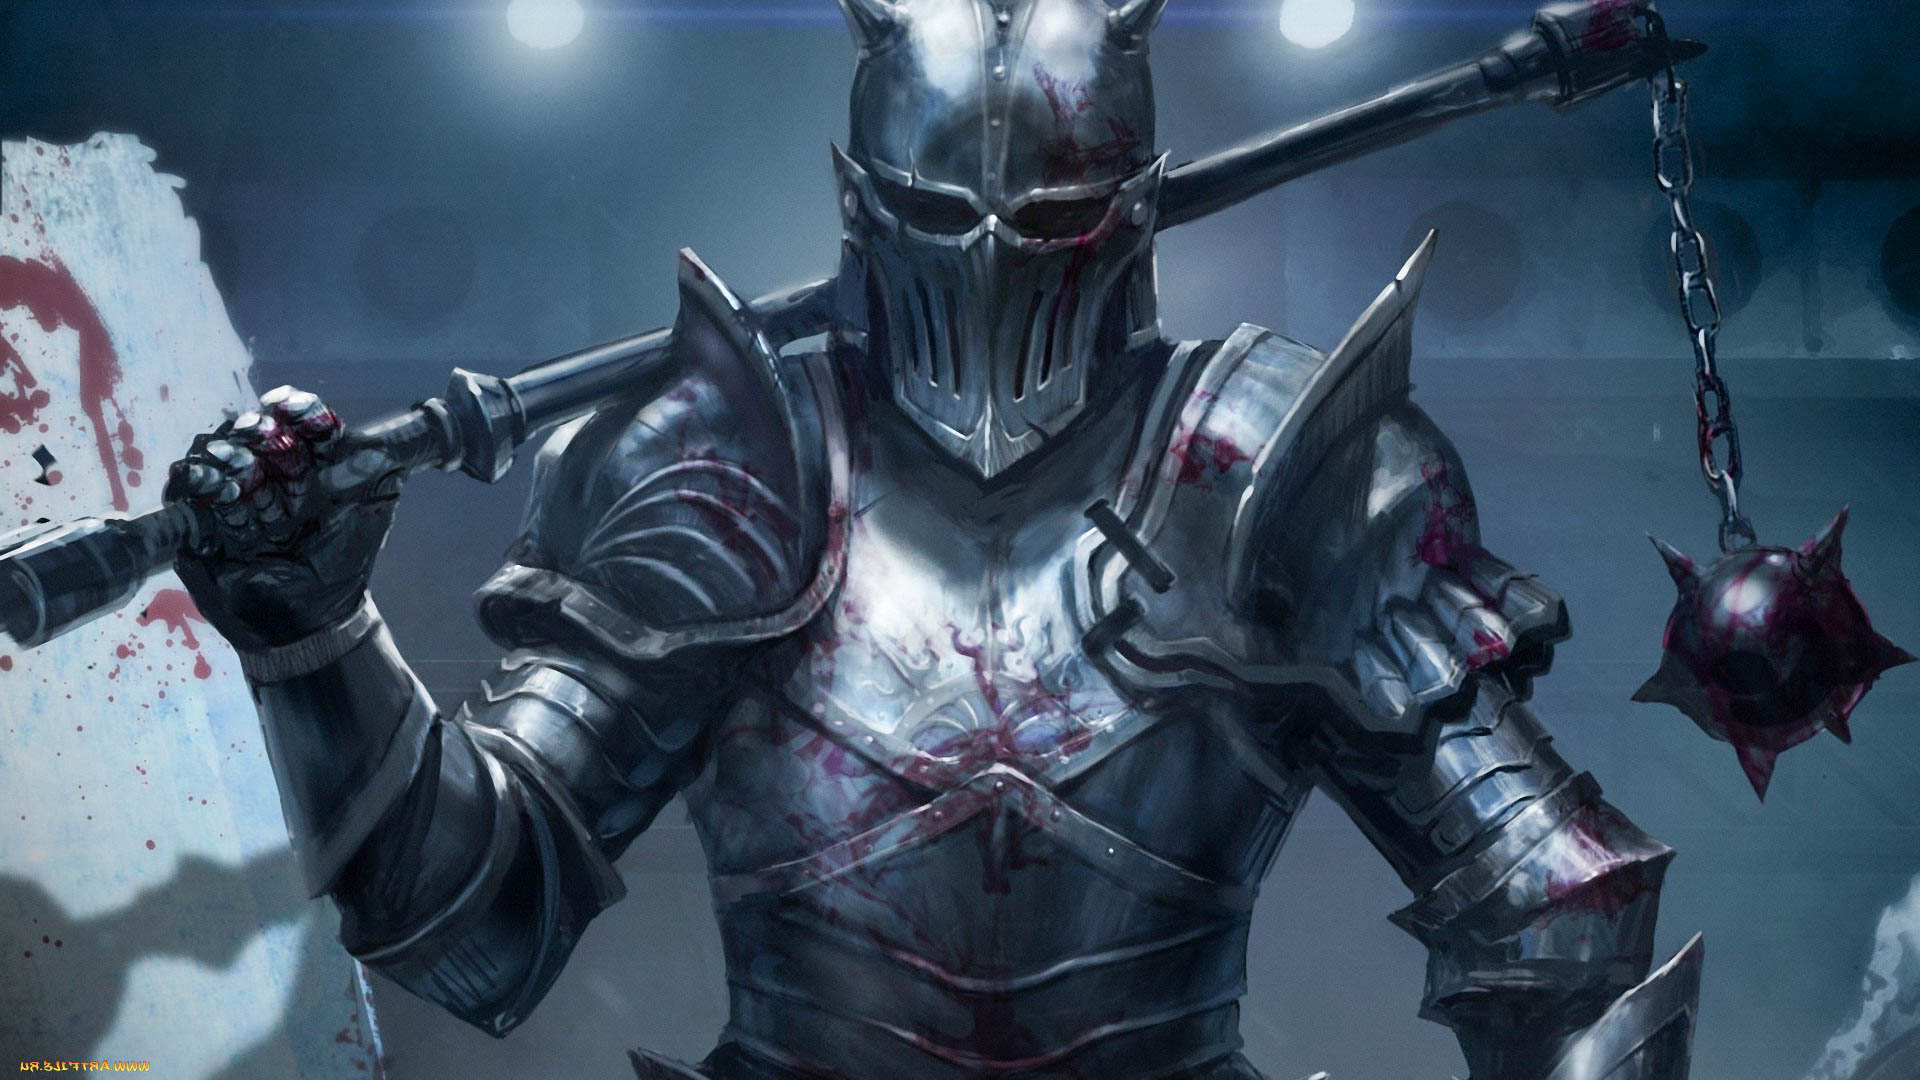 Fantasy Knight Best Slected Hd Wallpapers Hd Images In High Definition